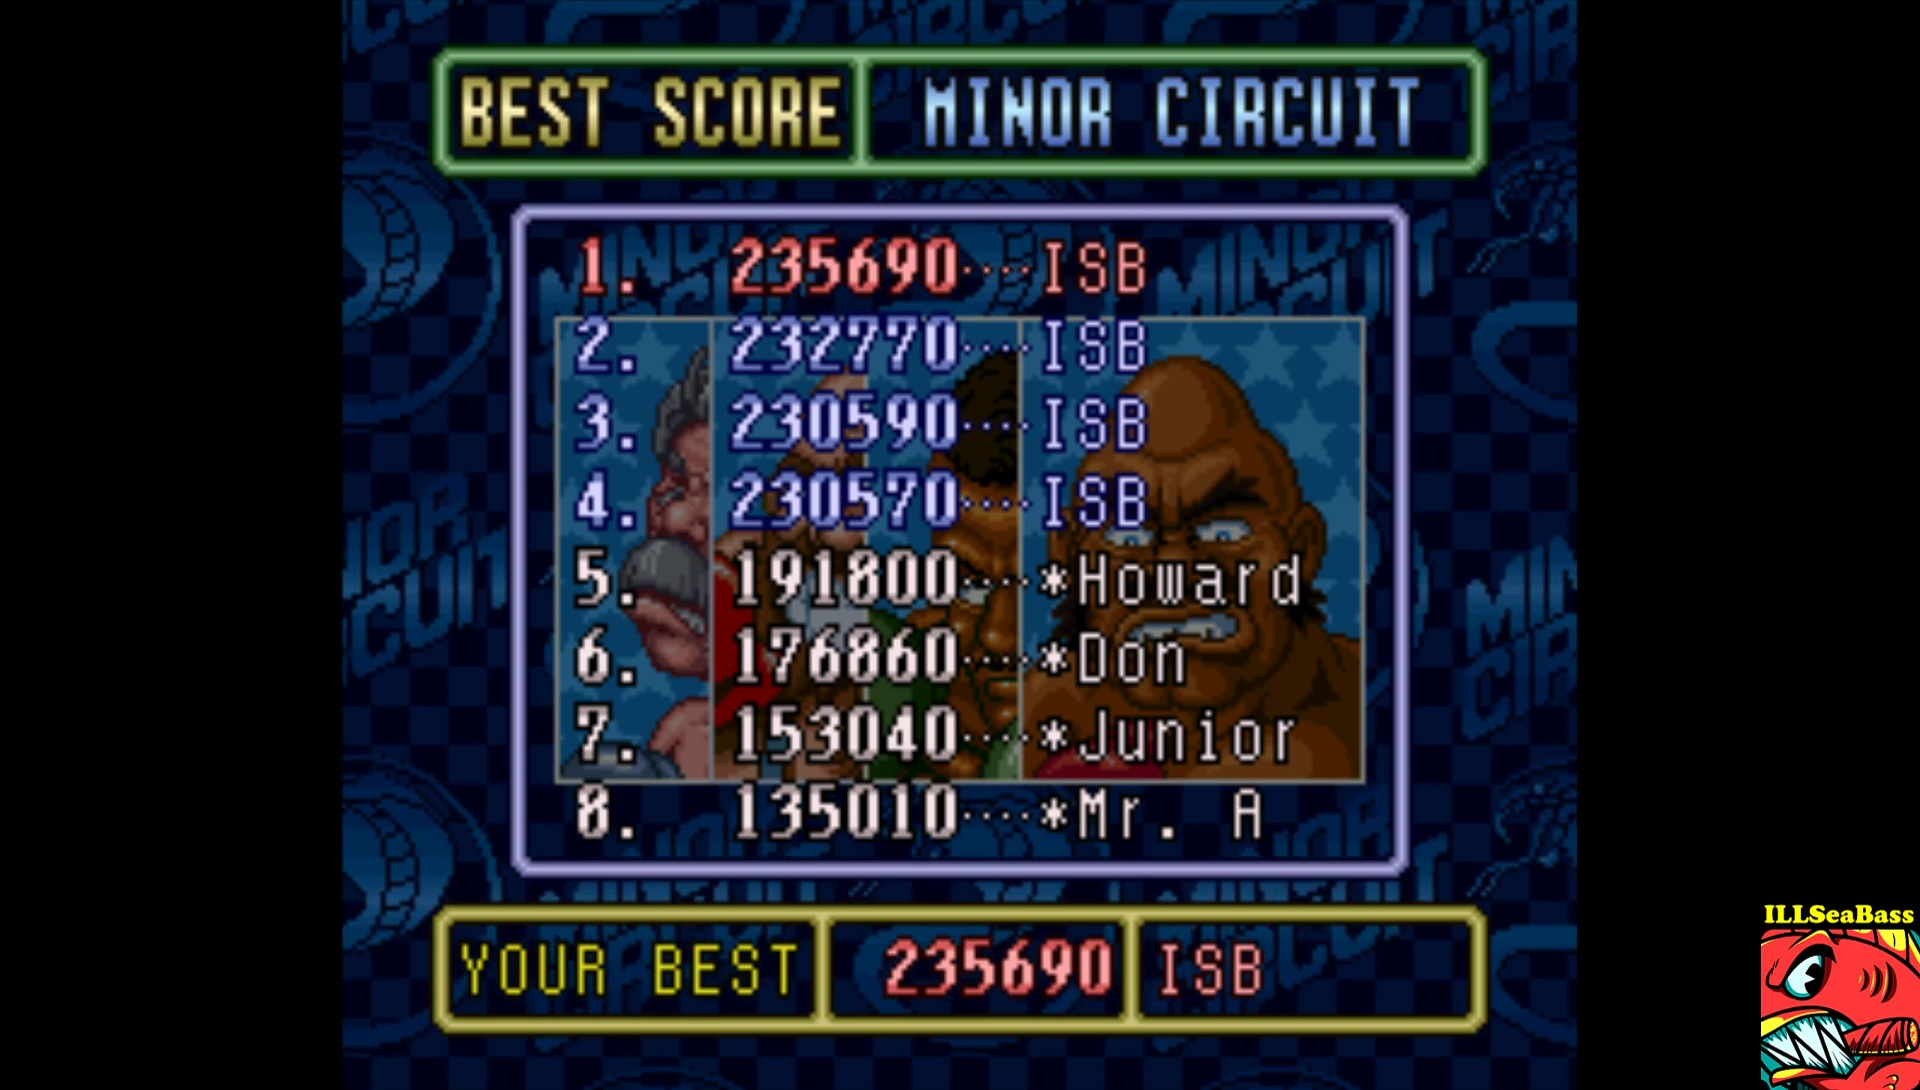 ILLSeaBass: Super Punch-Out!! [Minor Circuit] (SNES/Super Famicom Emulated) 235,690 points on 2017-09-08 19:09:32